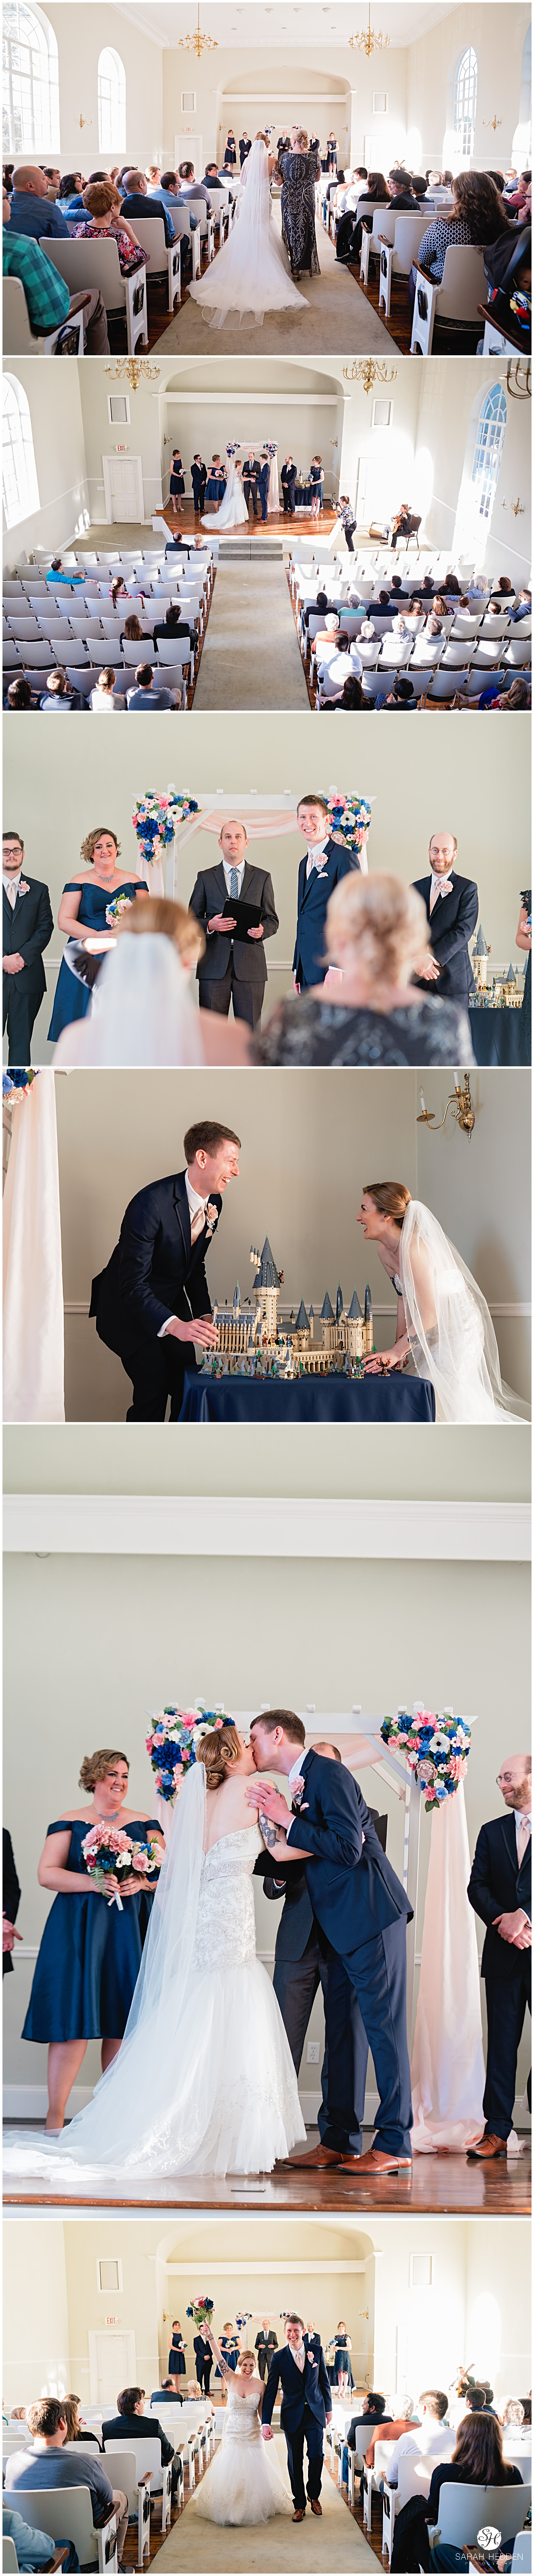 Wedding ceremony with harry potter lego set at Jenna & Stephen's Riverside House Wedding